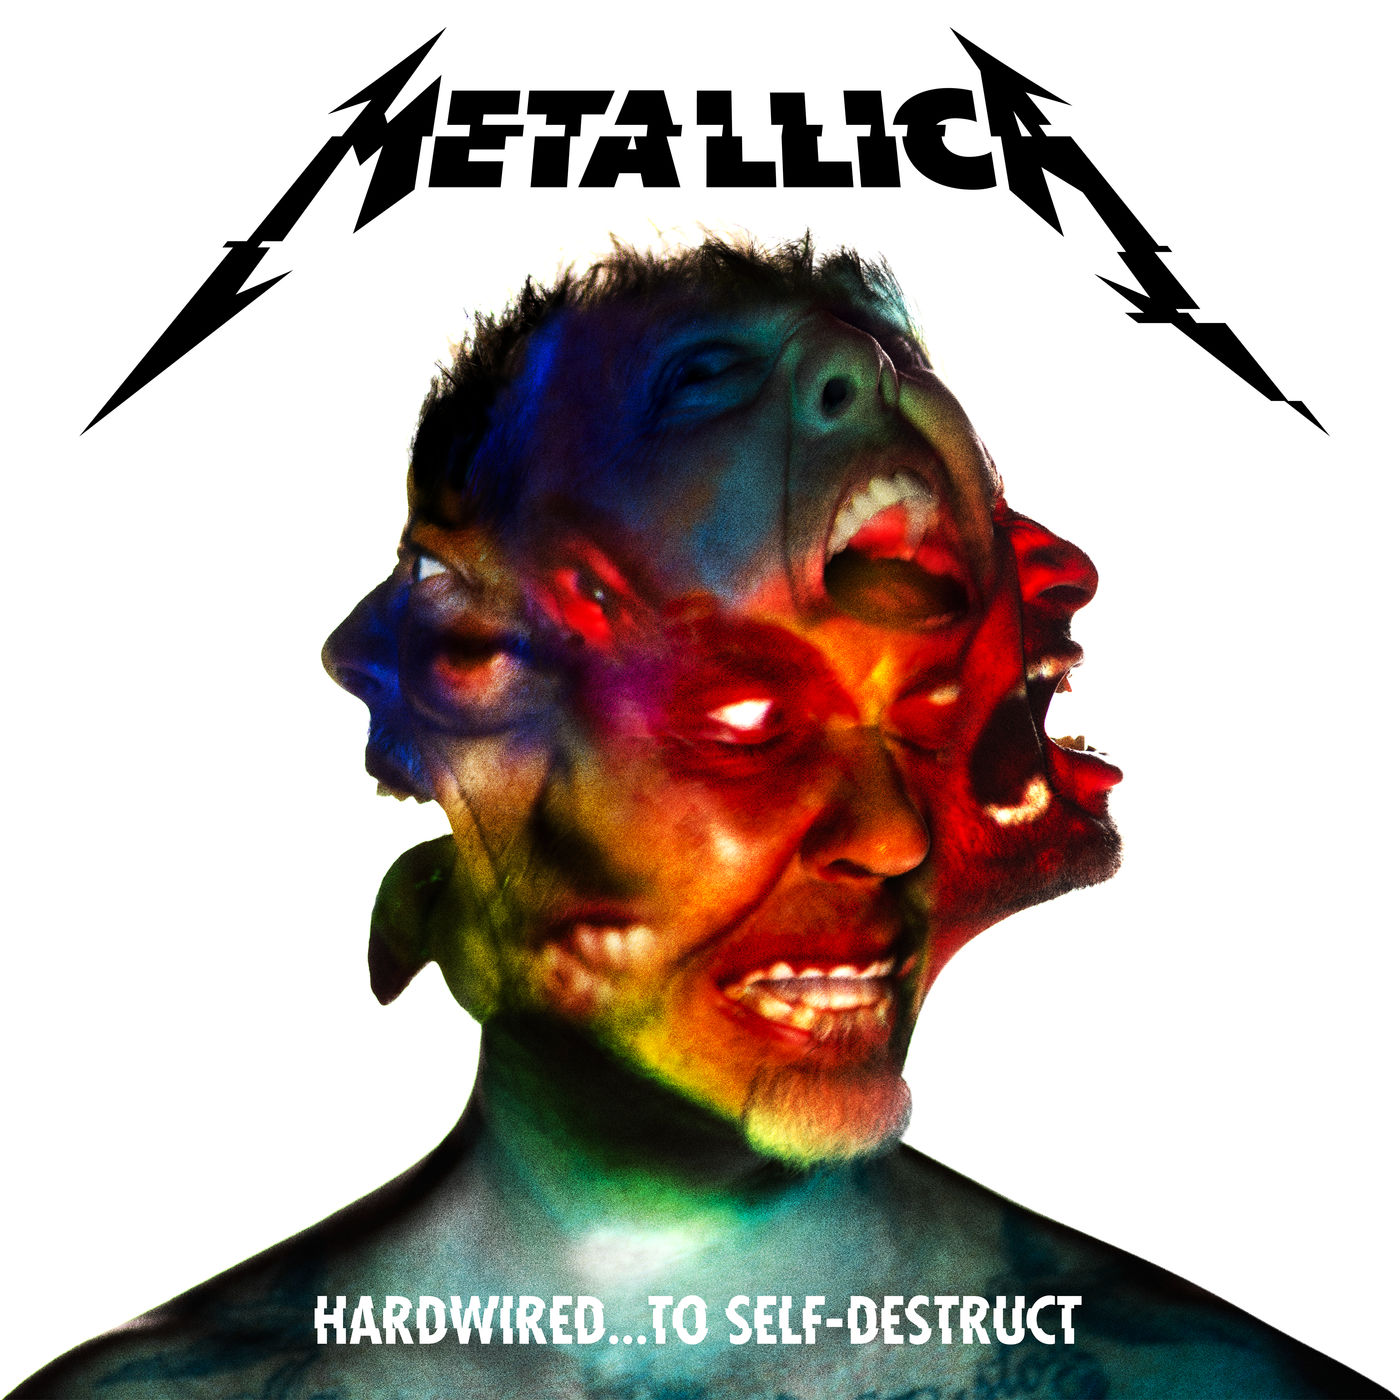 Metallica - Hardwired…To Self-Destruct (Deluxe) Cover